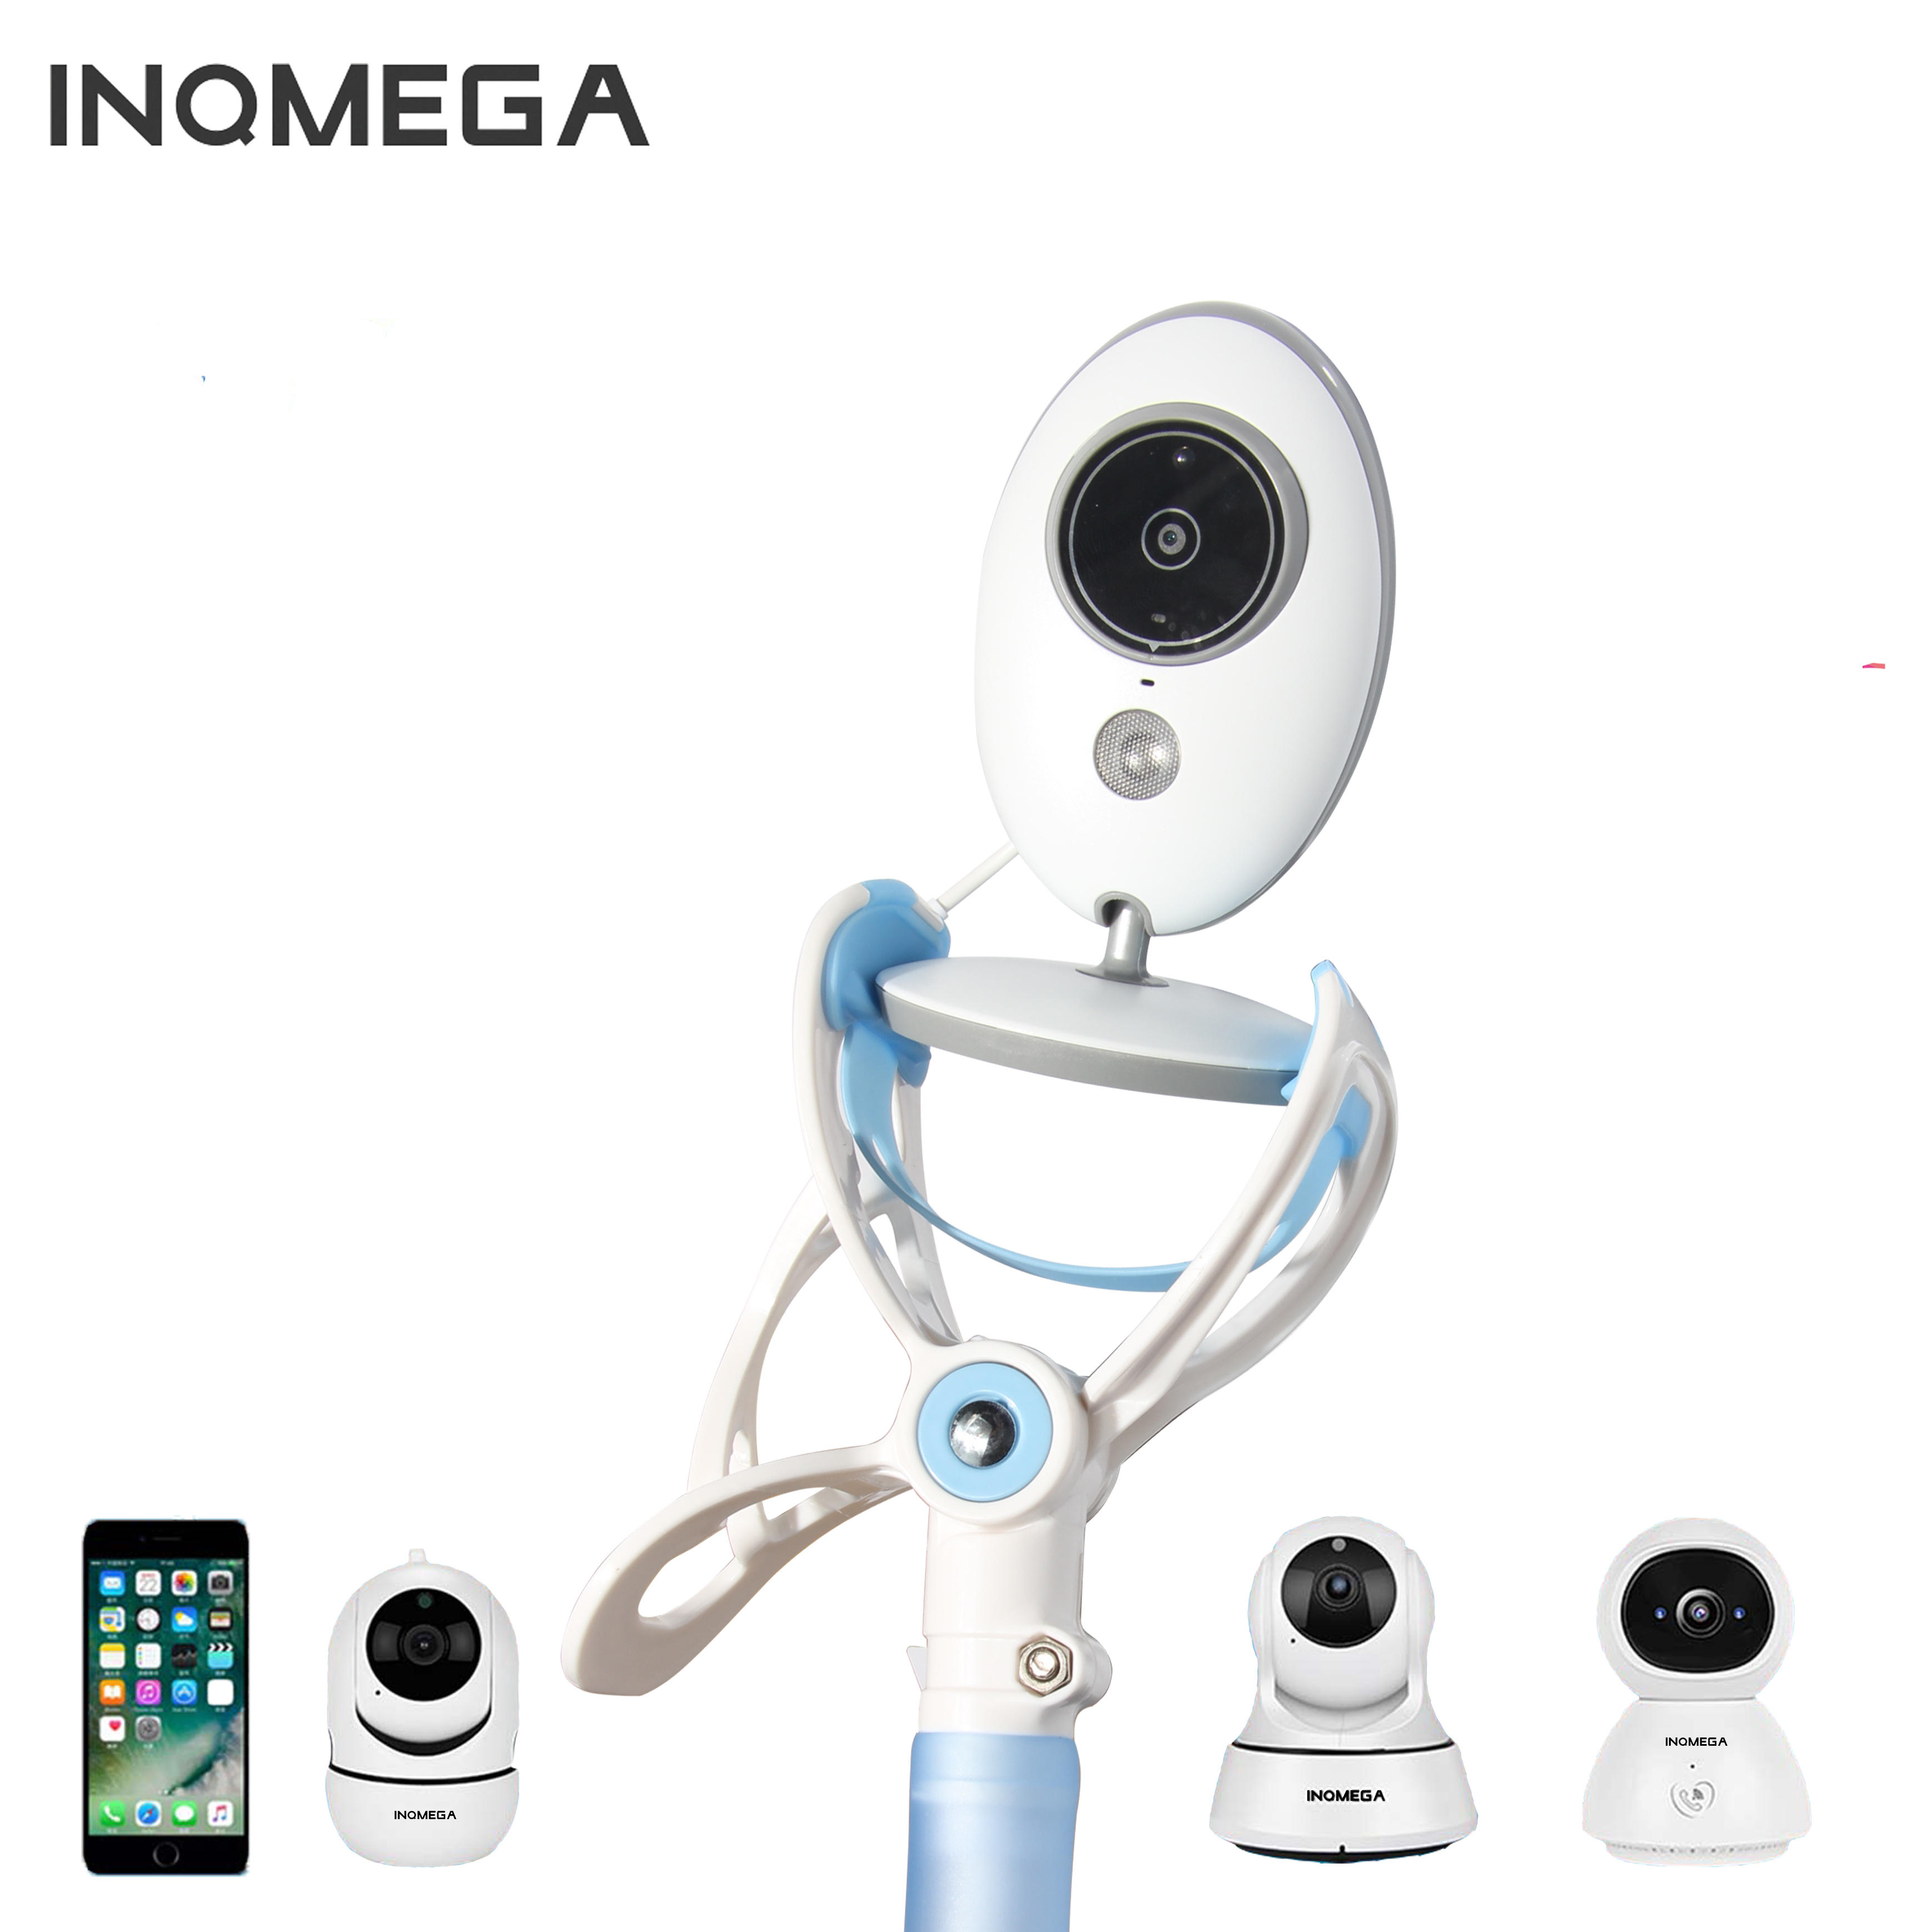 INQMEGA Multifunction Baby Monitors 360° Wall Mount Camera Rack Secure Camera Clamp Phone Holder Bracket Stand Bed Lazy Cradle Long Arm Adjustable